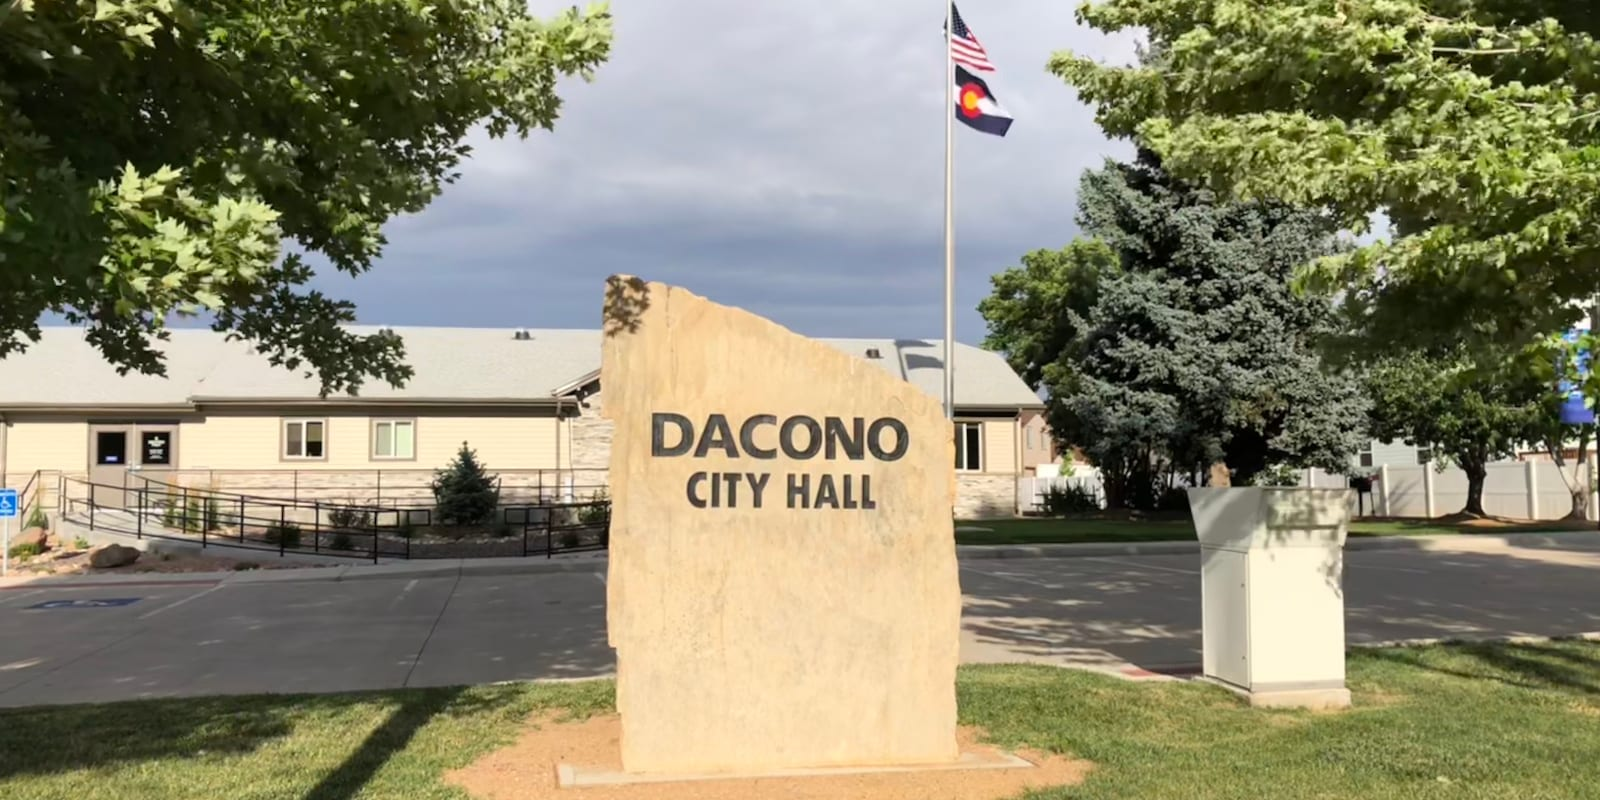 Dacono CO City Hall